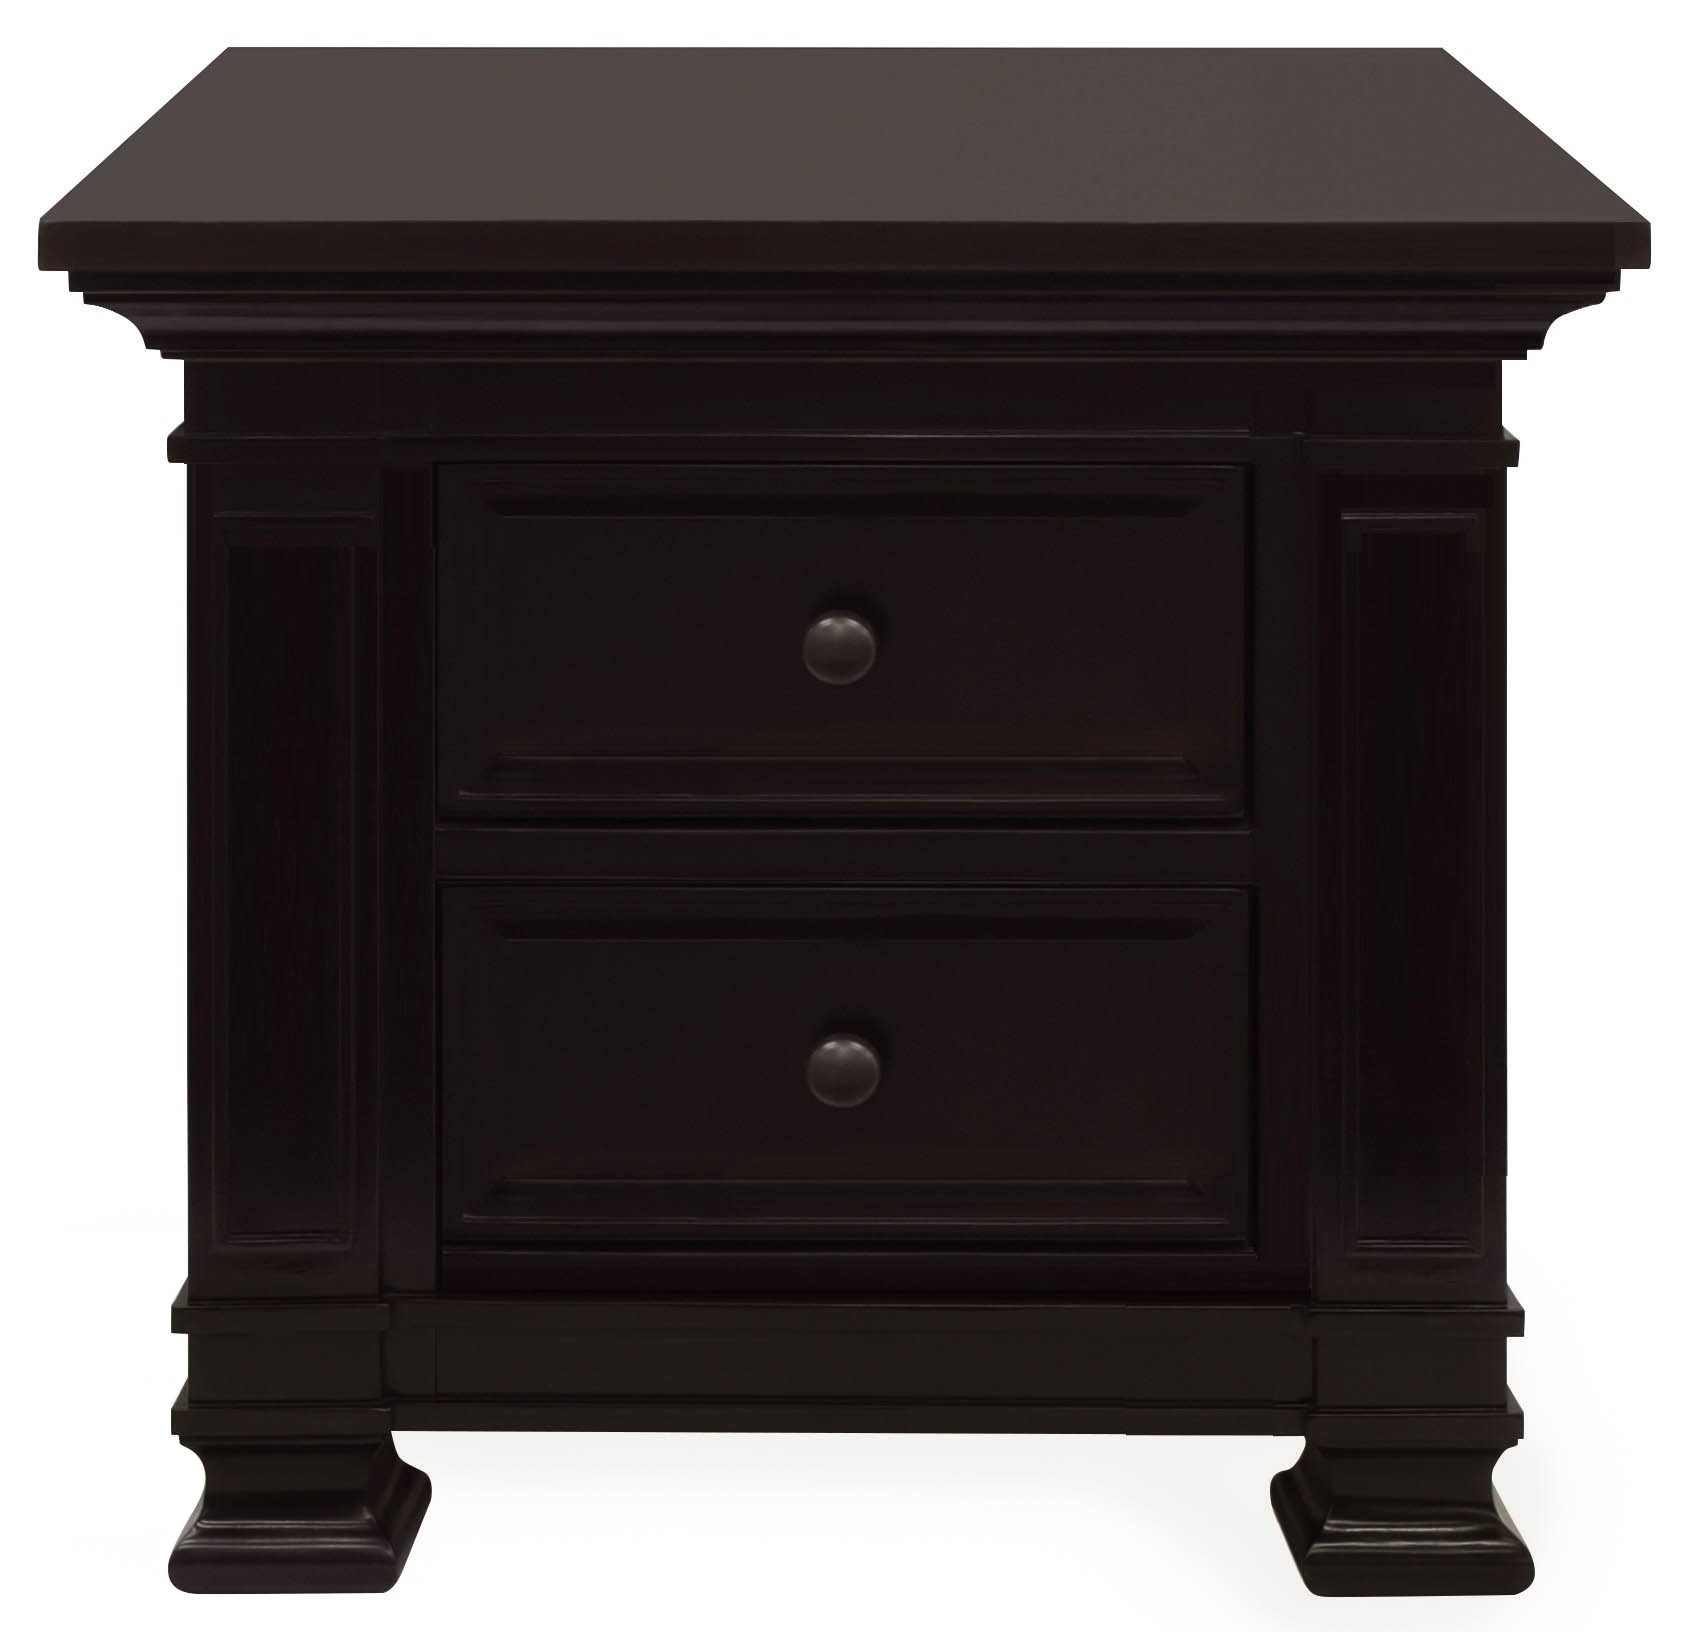 black bedroom end tables rustic painted wooden table with hand carved glass cut for rattan coffee top round matching and ashley furniture home locations kijiji gold leaf ethan